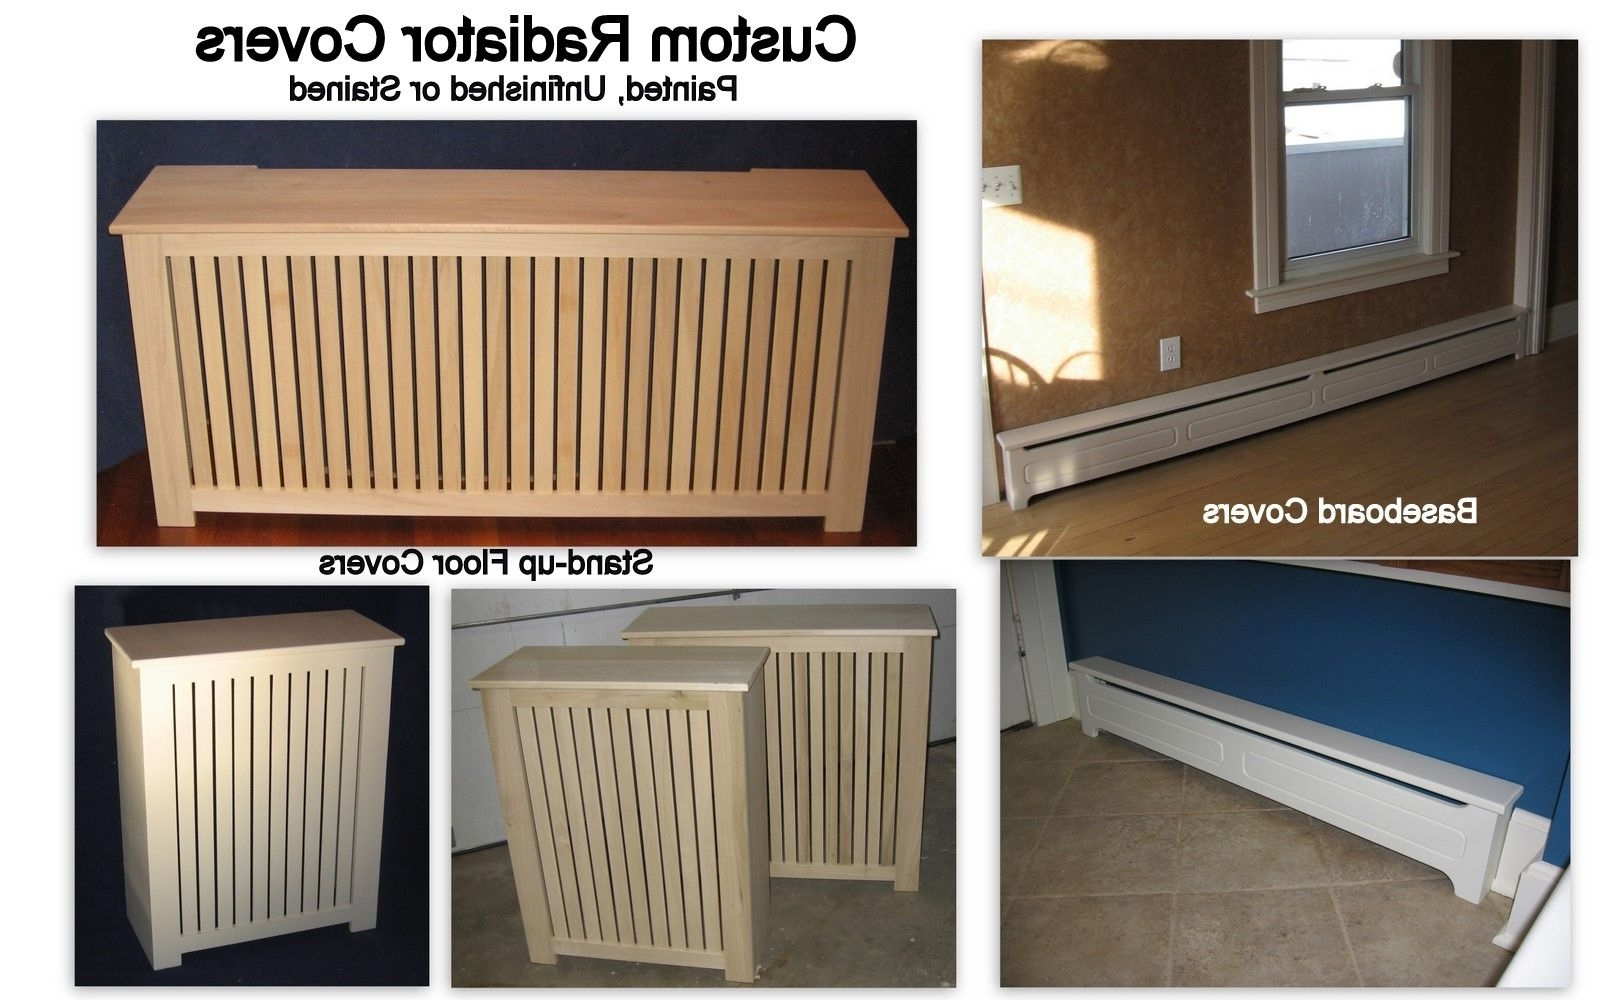 2017 Custom Baseboard Radiator Coverwoodwright Innovations For Radiator Cover Tv Stand (View 14 of 15)